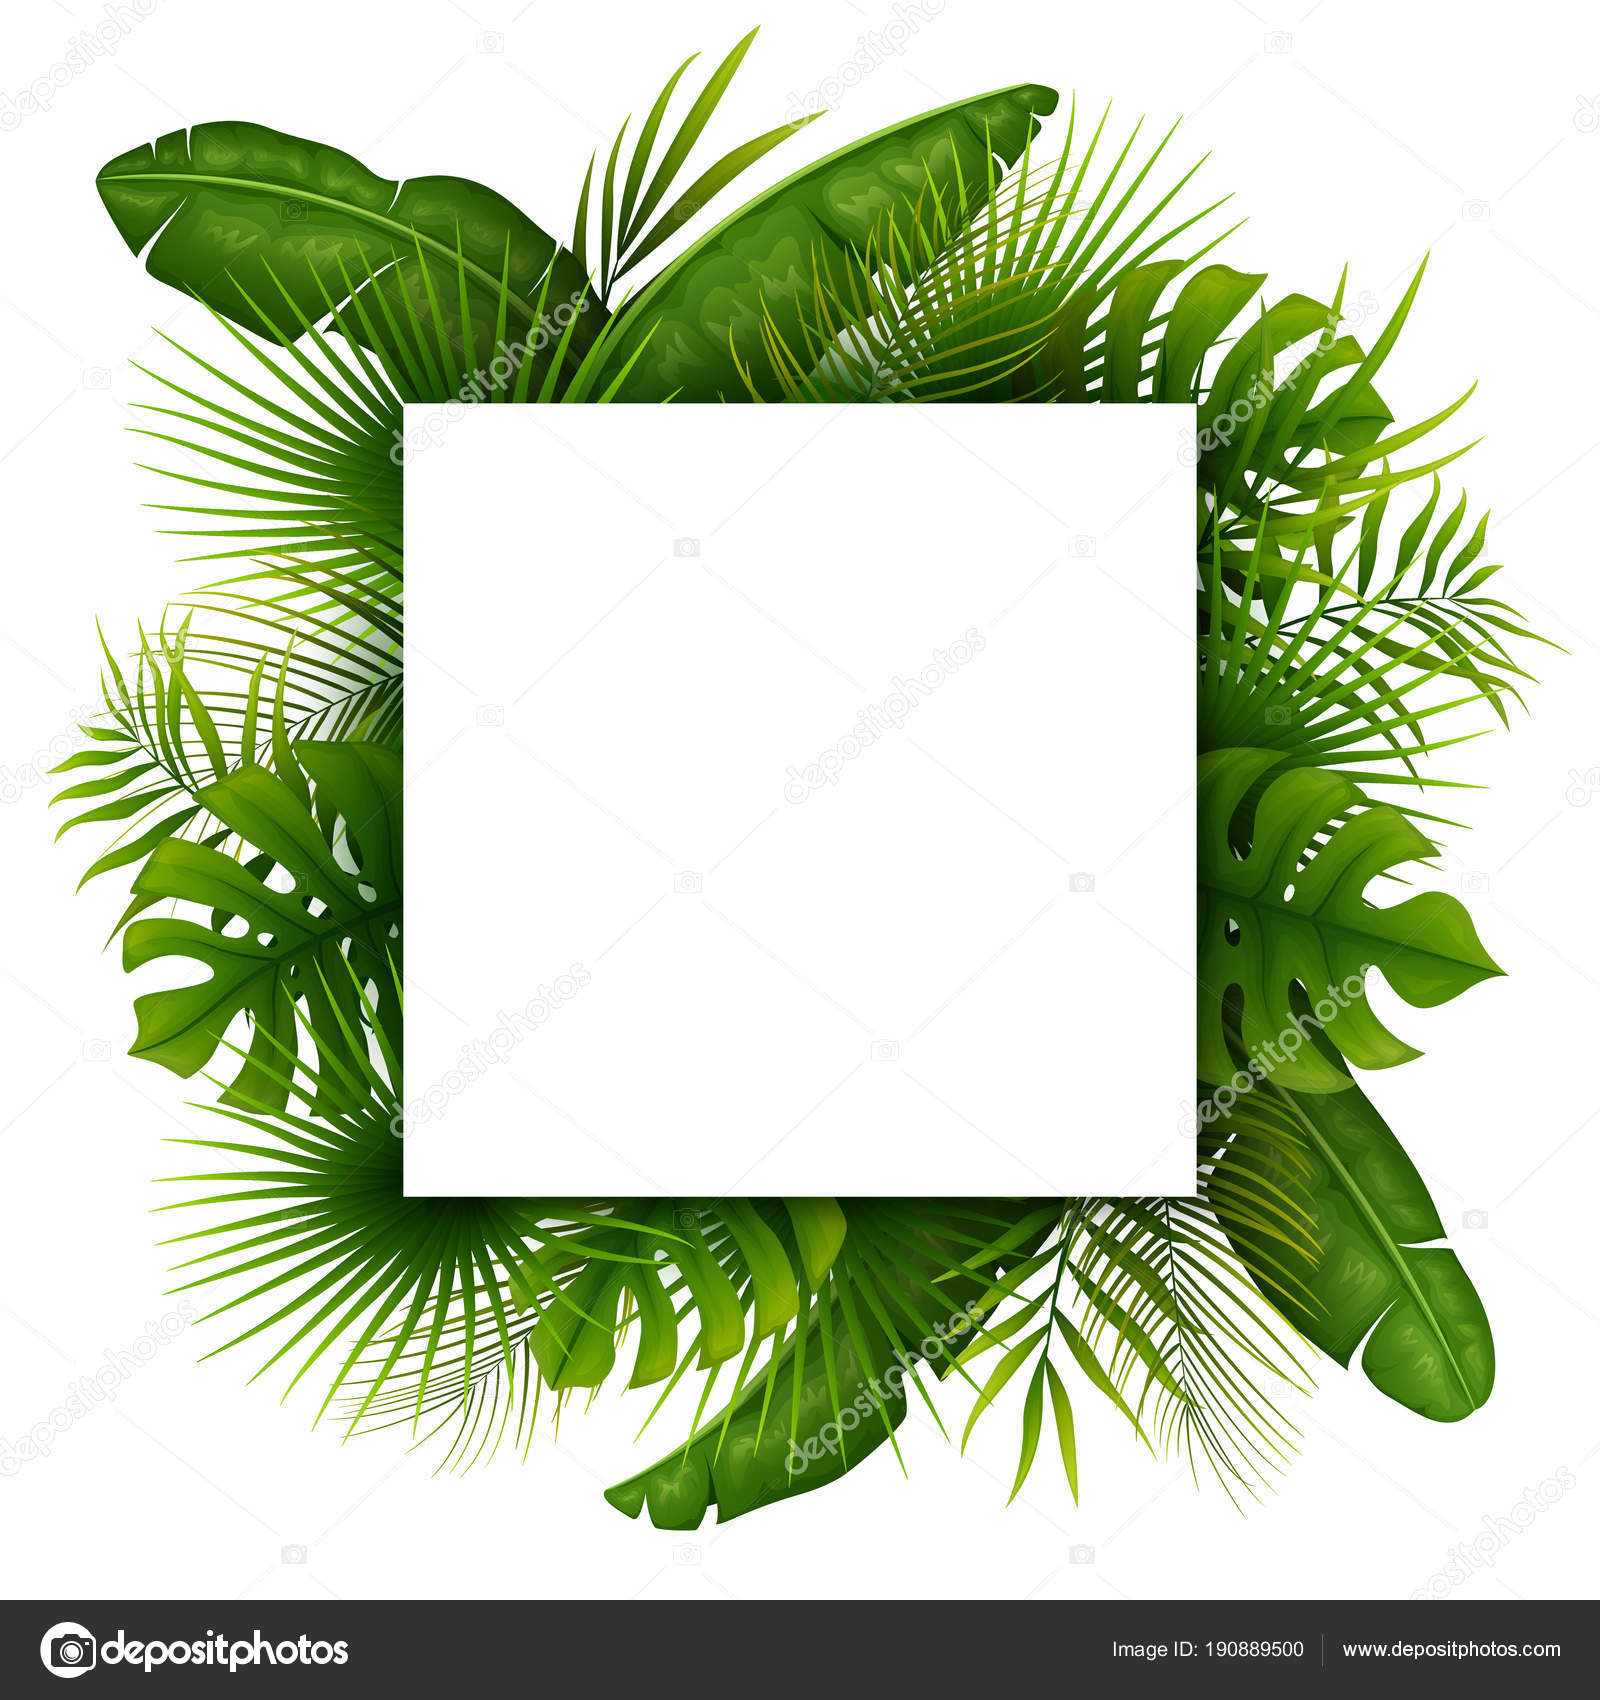 Tropical Green Leaves White Square Frame Place Text Isolated White Stock Vector C Dreamcreation01 190889500 If you are interested in. https depositphotos com 190889500 stock illustration tropical green leaves white square html